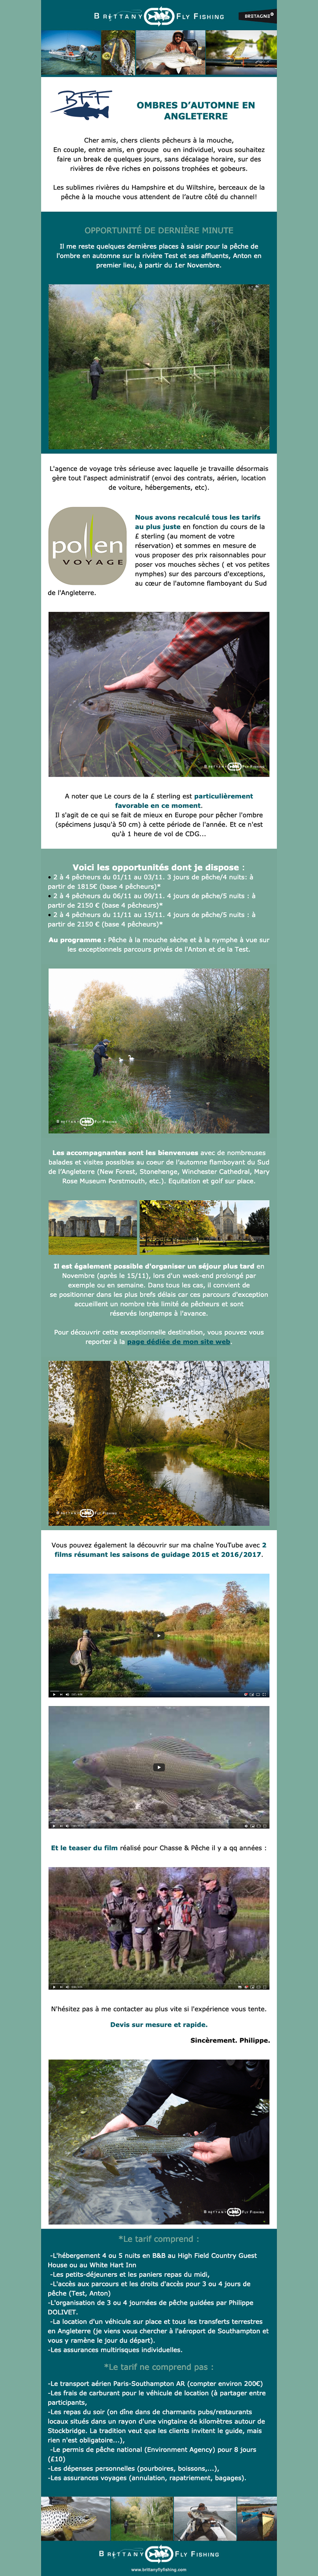 brittany-fly-fishing-actu-ombre-automne-angleterre